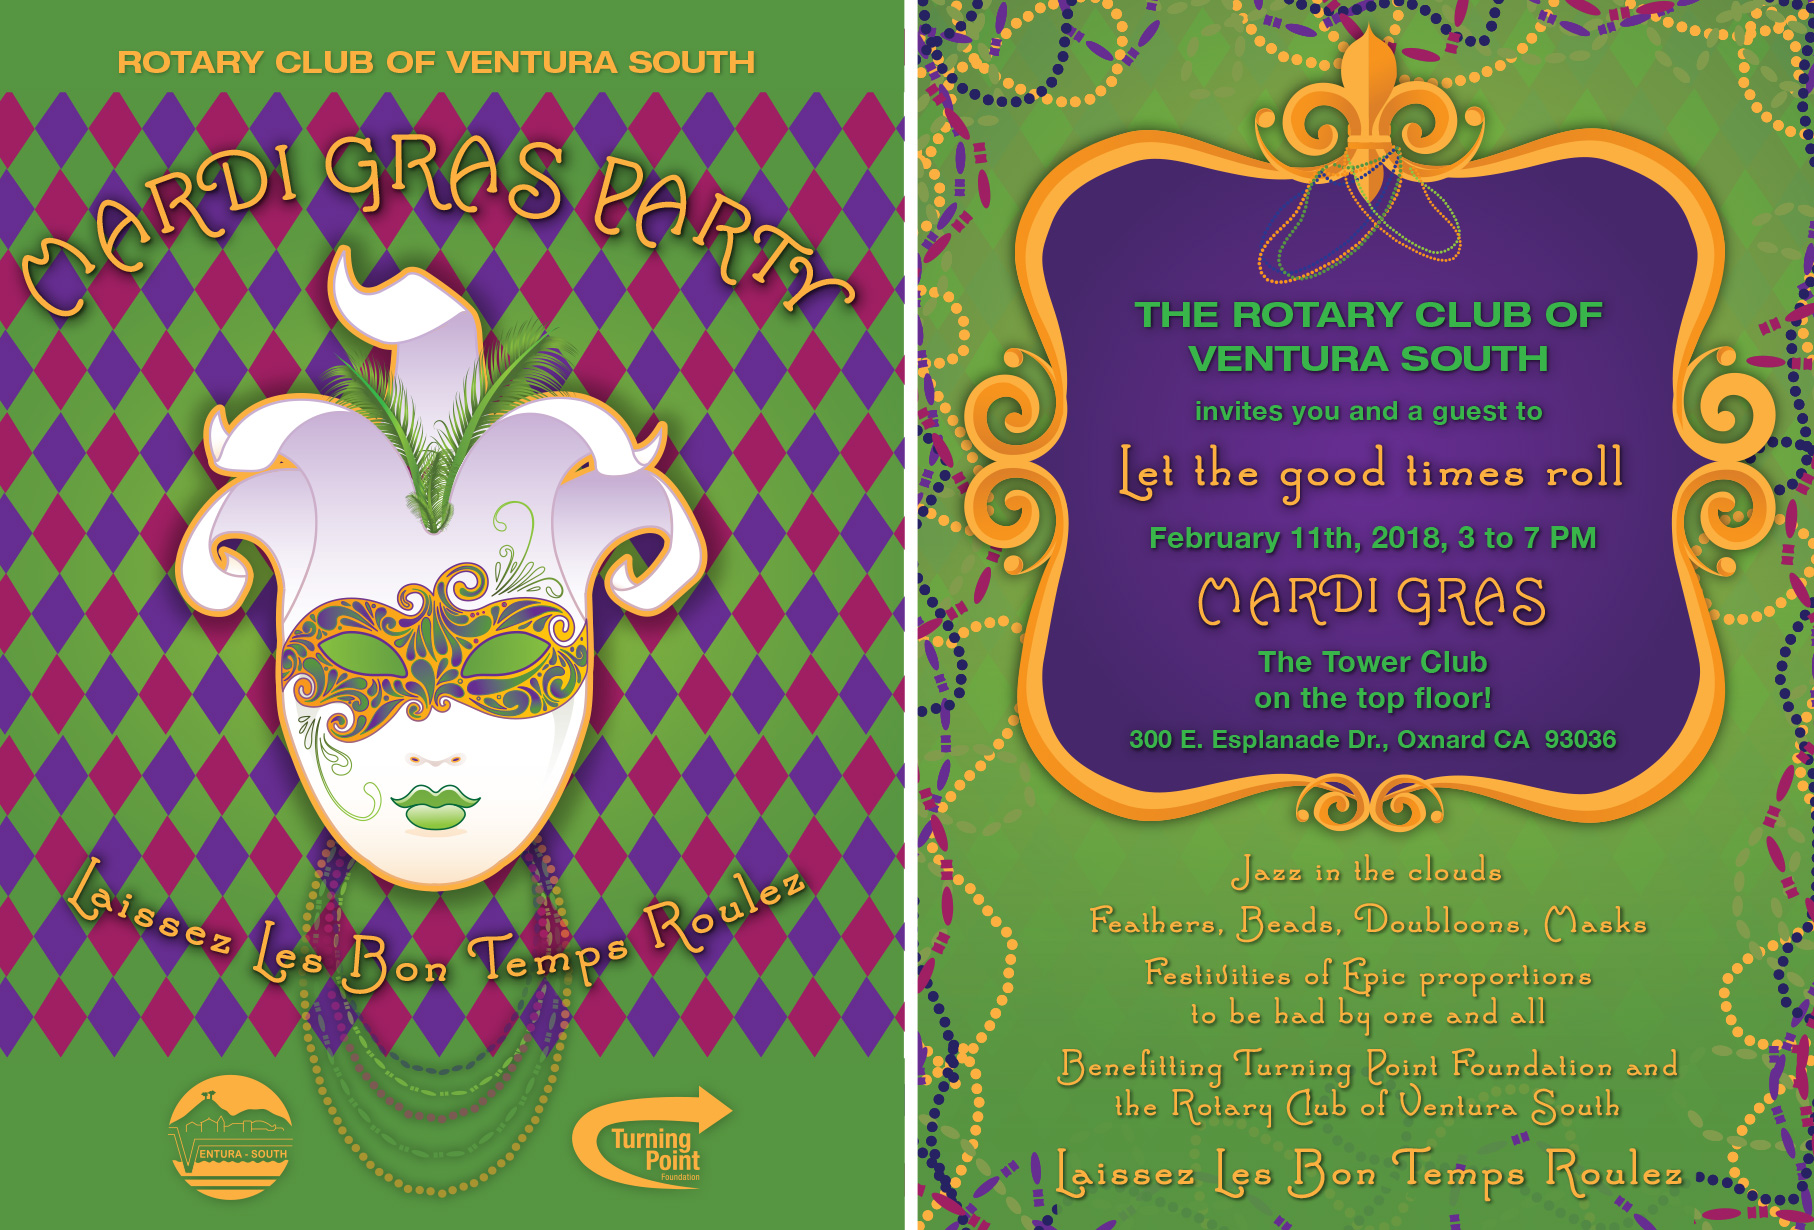 Mardi Gras Party – The Tower Club